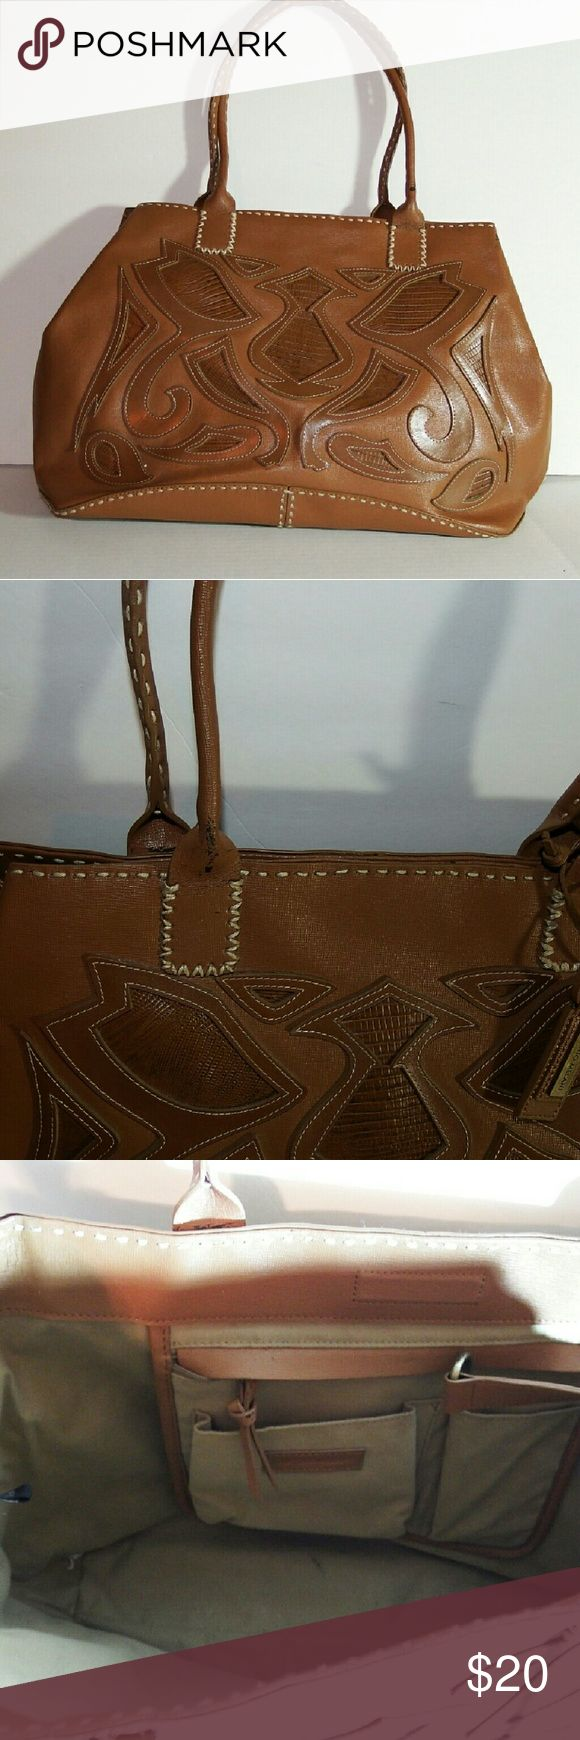 Antonio Melani Handbag Leather Antonio Melani Handbag, Canvas, has some wear but still beautiful ANTONIO MELANI Bags